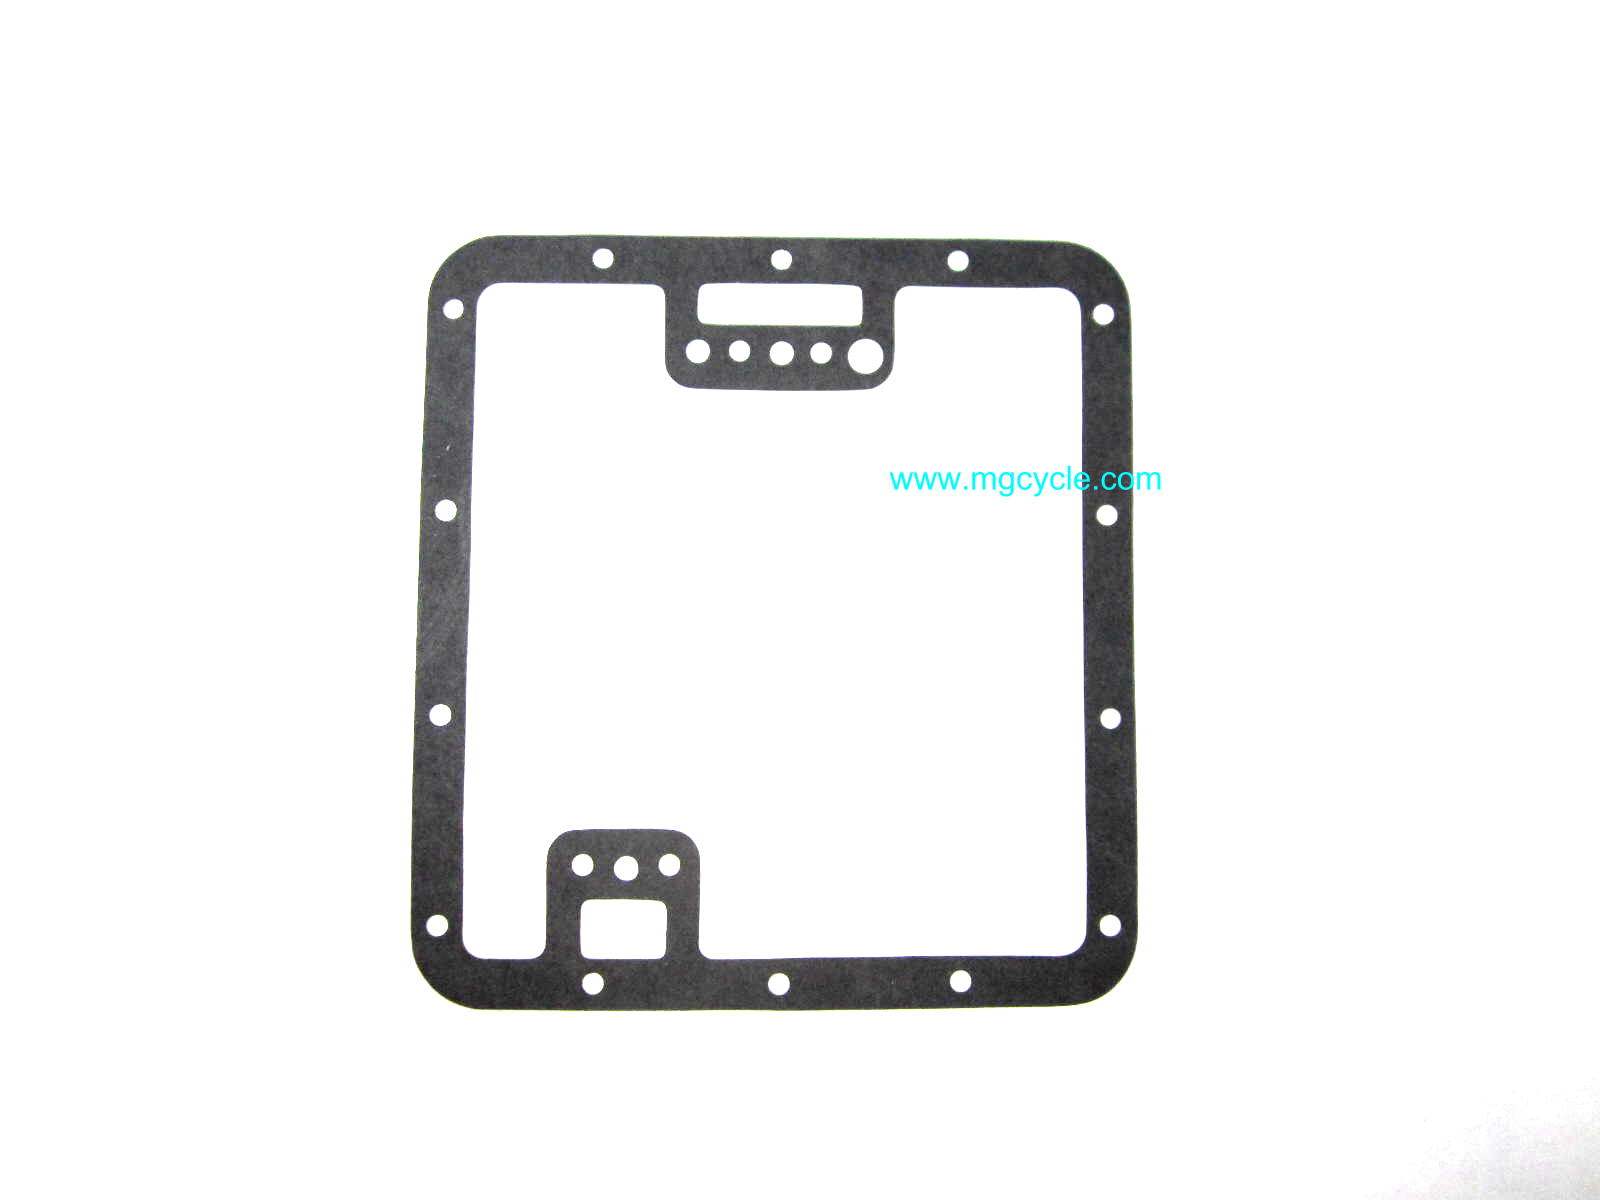 Oil pan gasket Moto Guzzi big twins GU14003600